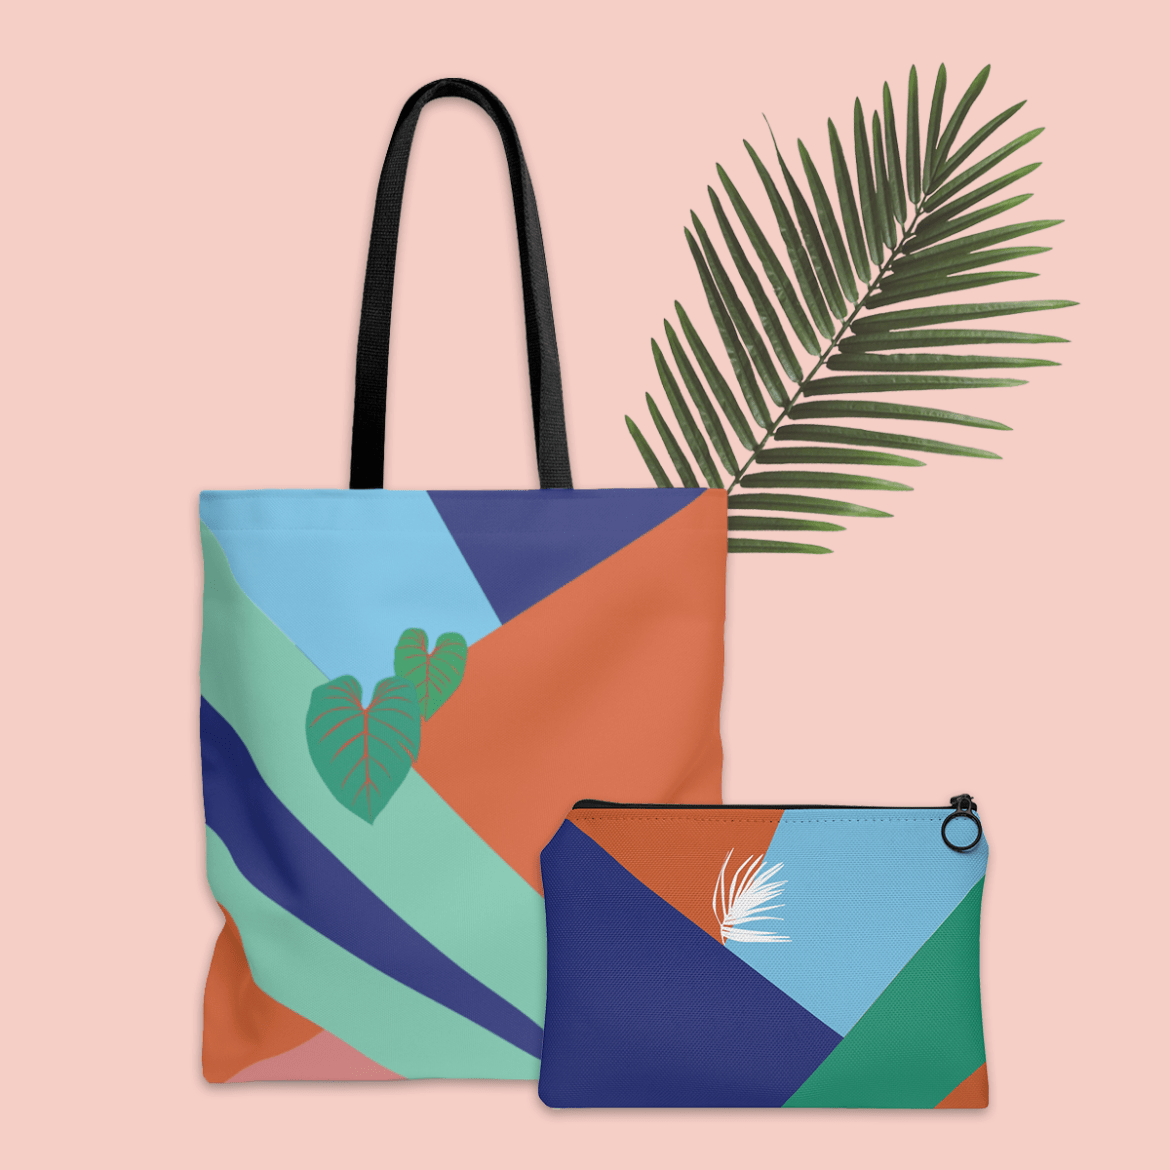 Sac Tropicalia - EOLE PARIS